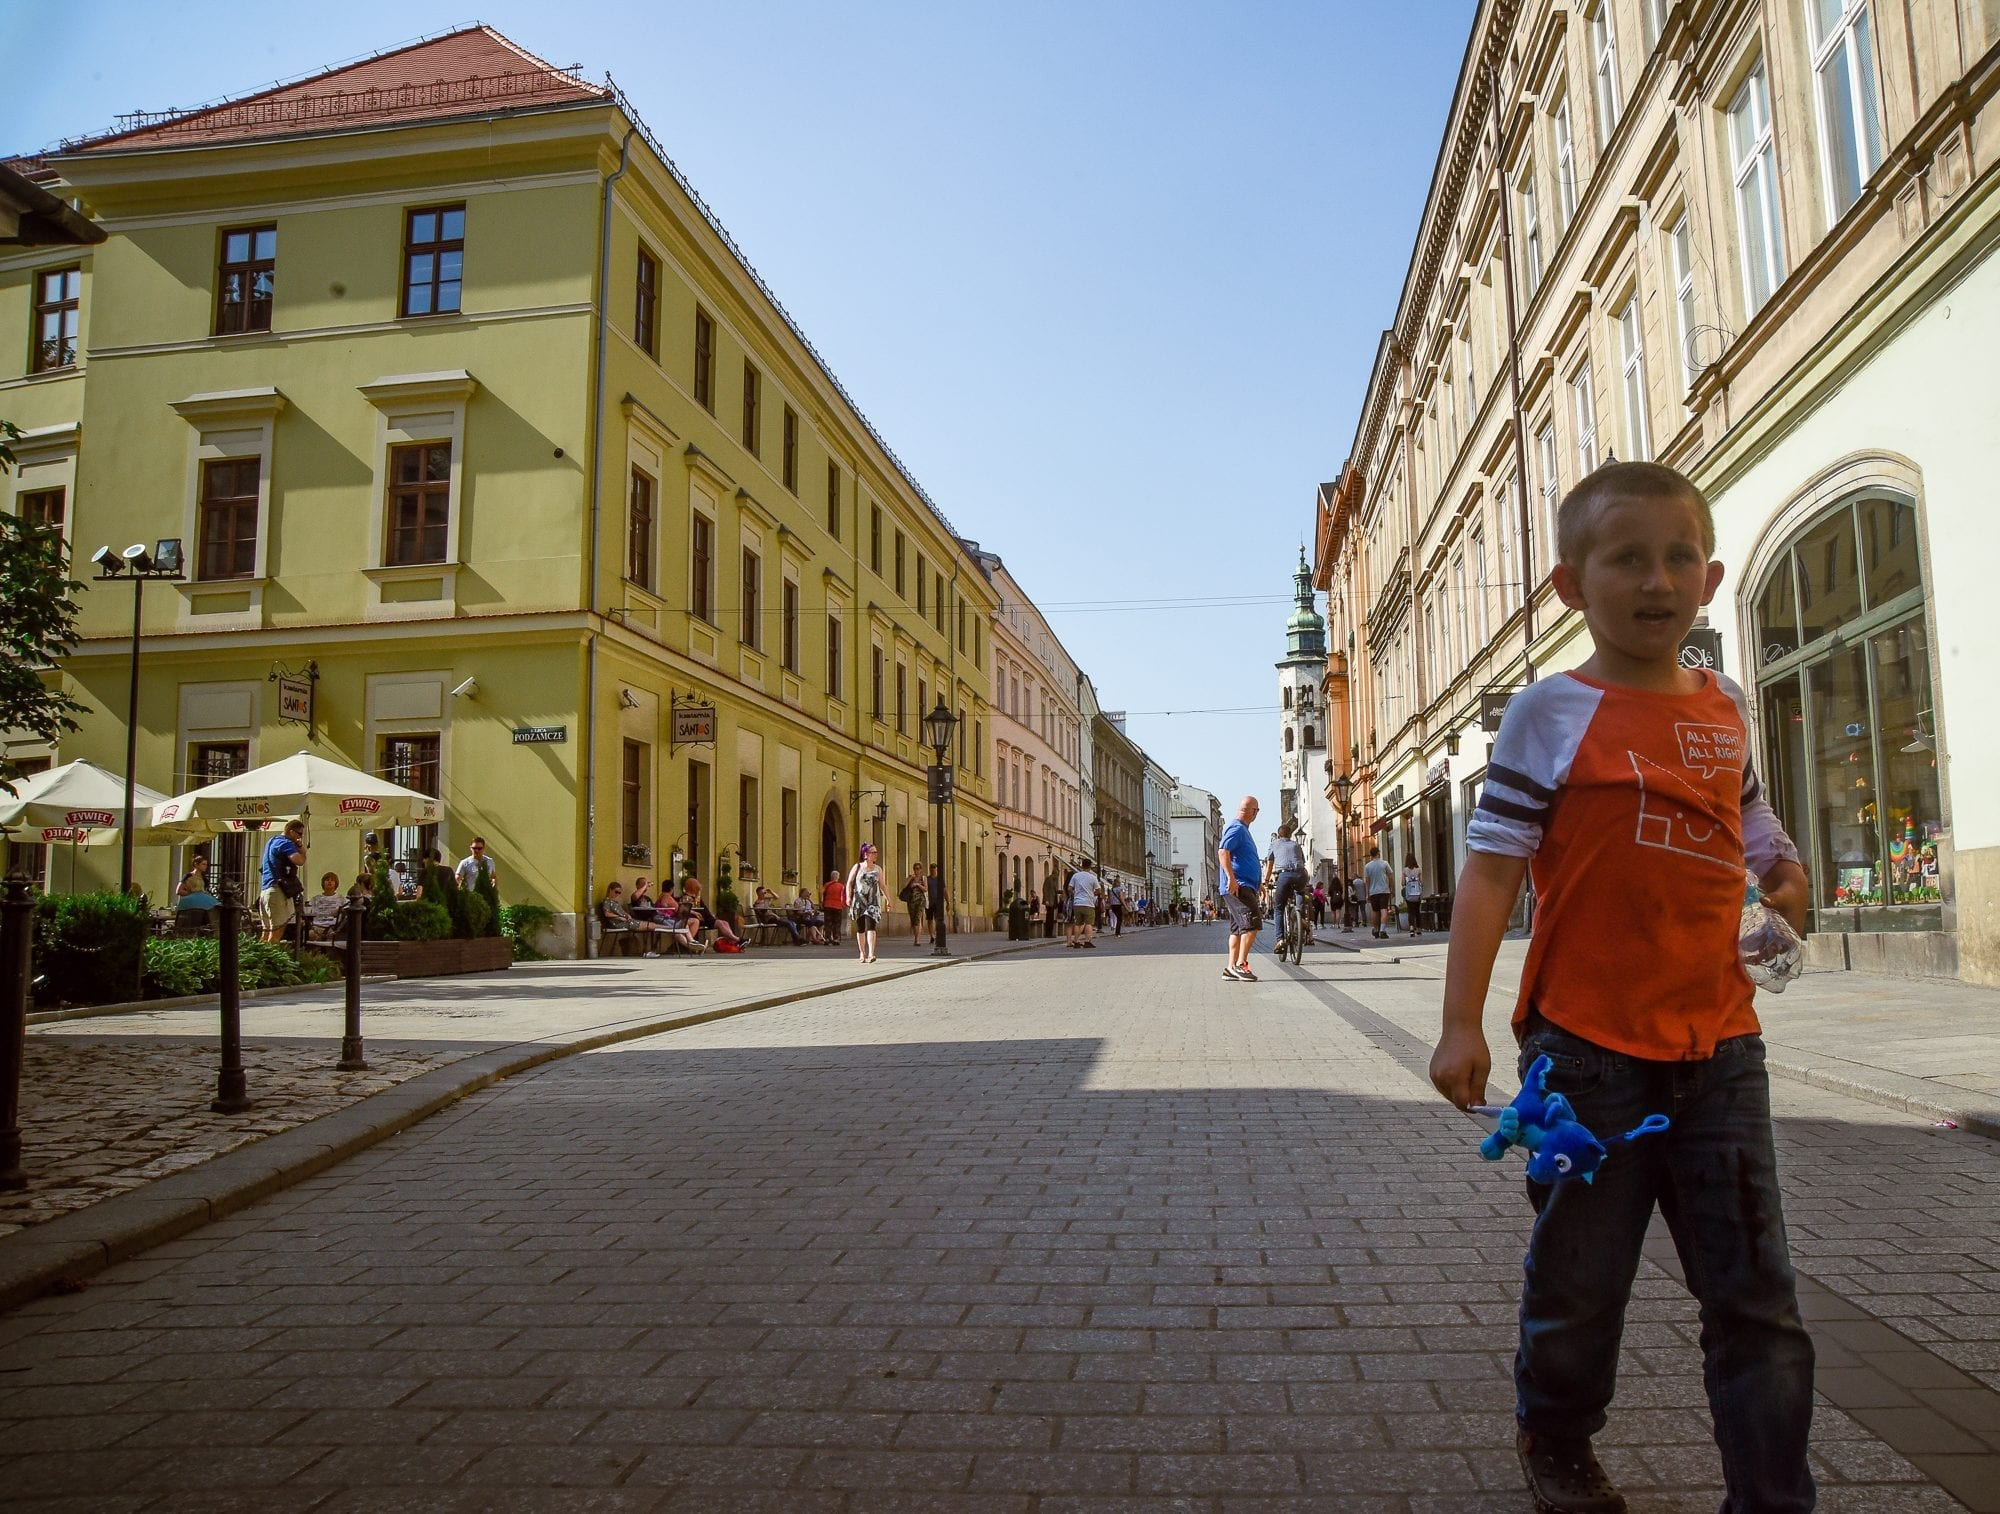 small boy in beautiful old market place street in krakow